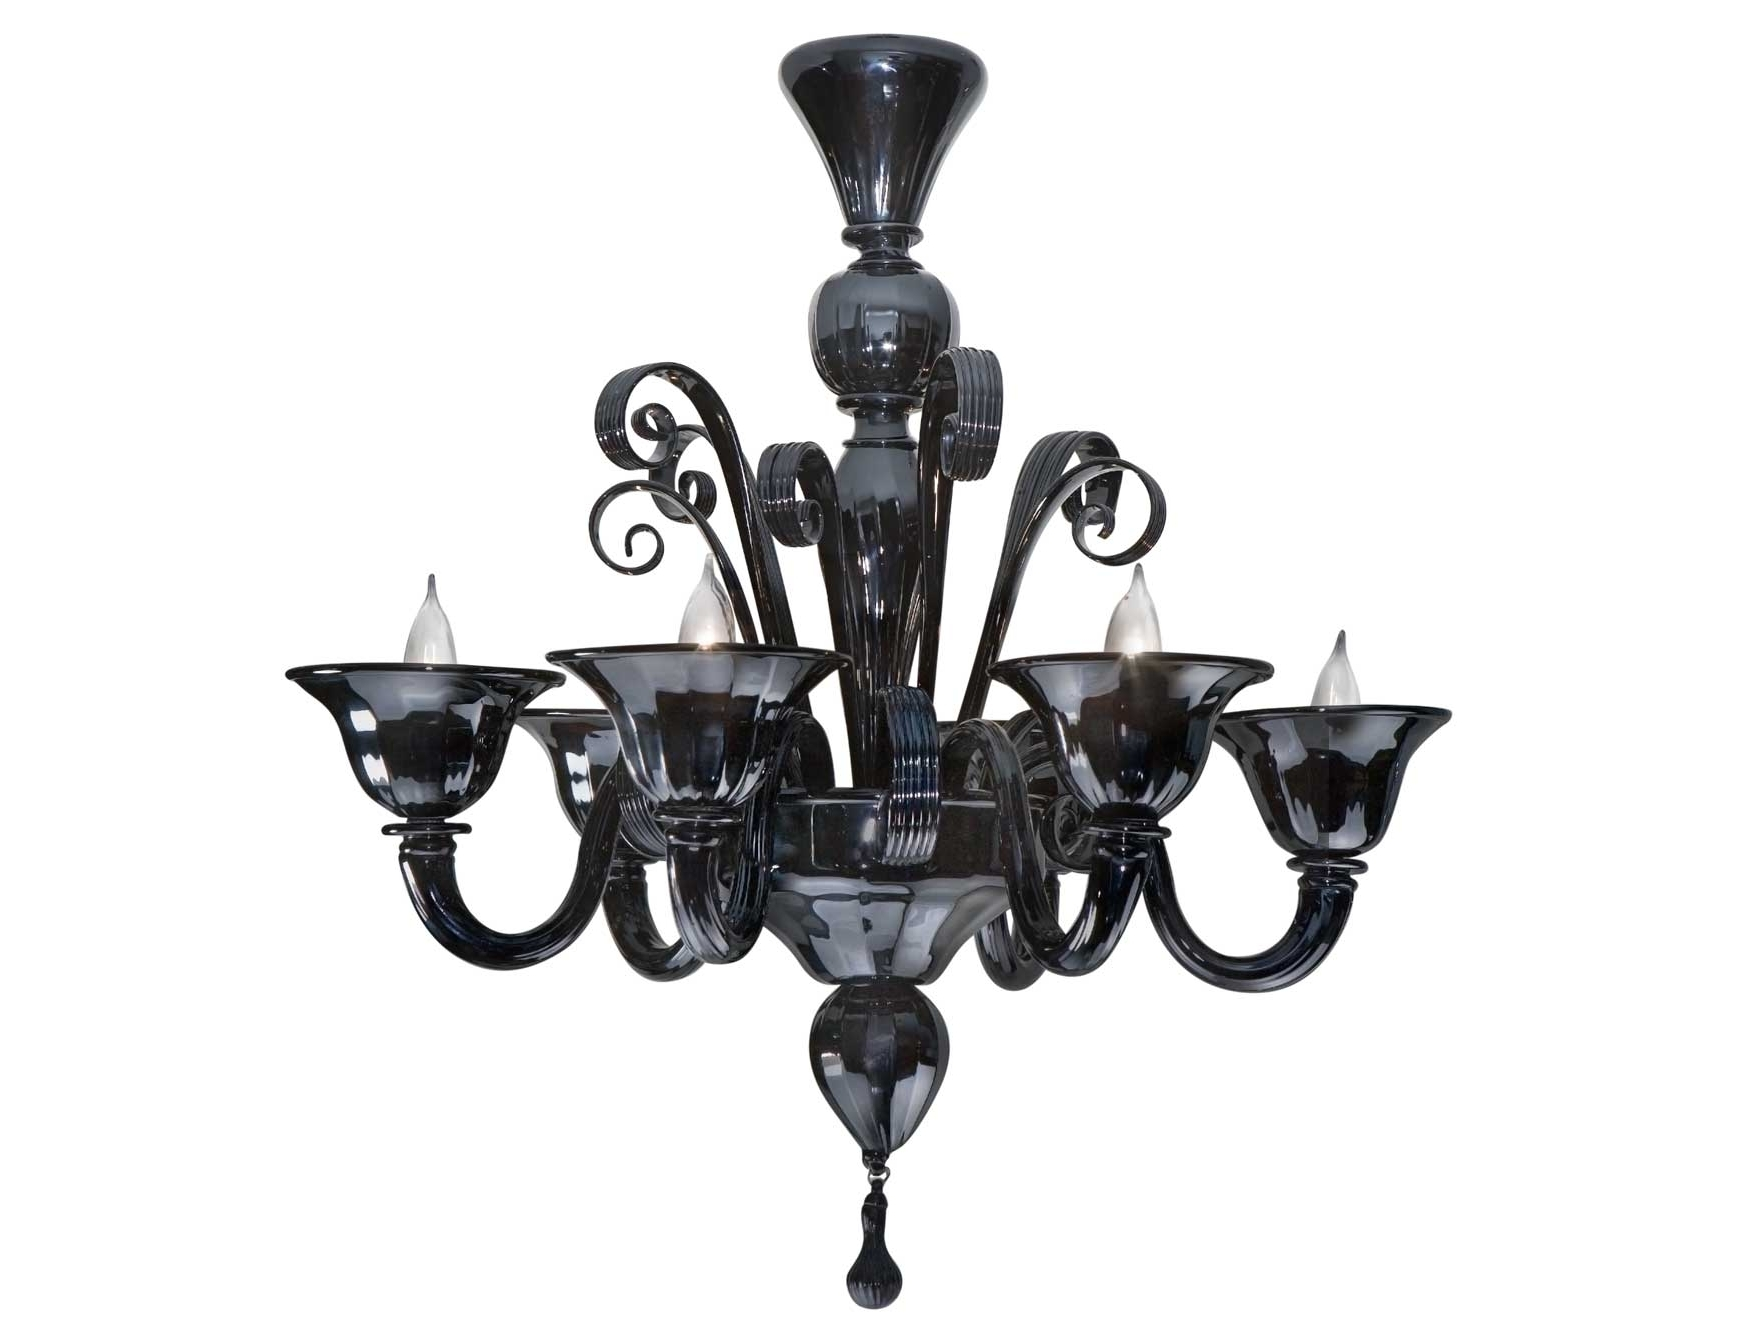 Nella Vetrina Black Murano 6 959/6 Murano Chandelier In Black Intended For Most Recently Released Murano Chandelier (View 20 of 20)